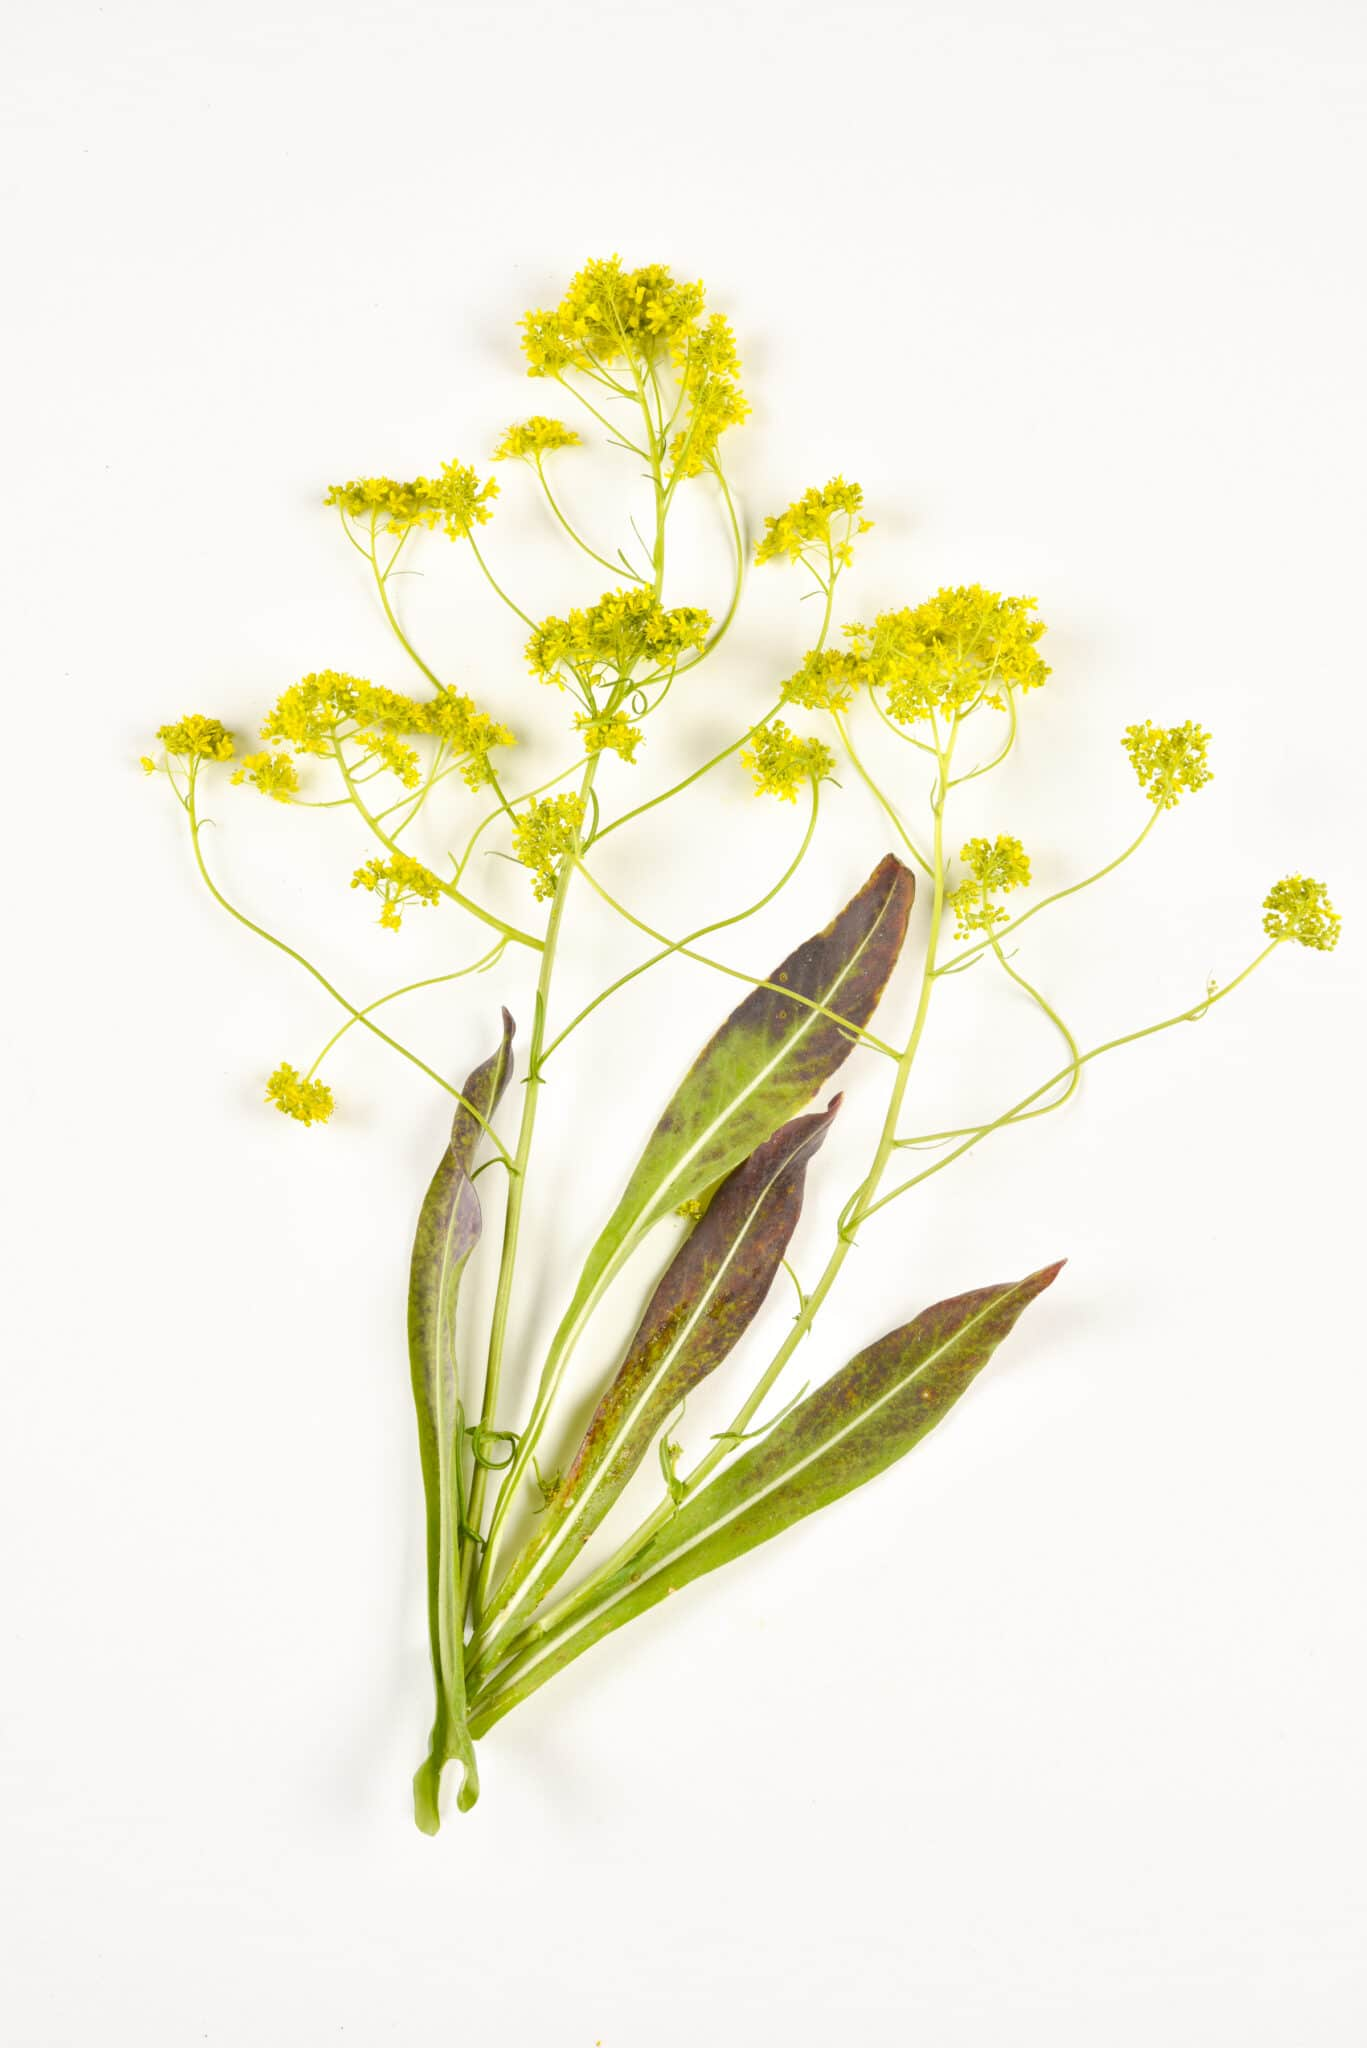 A woad sprig with yellow flowers in bloom.